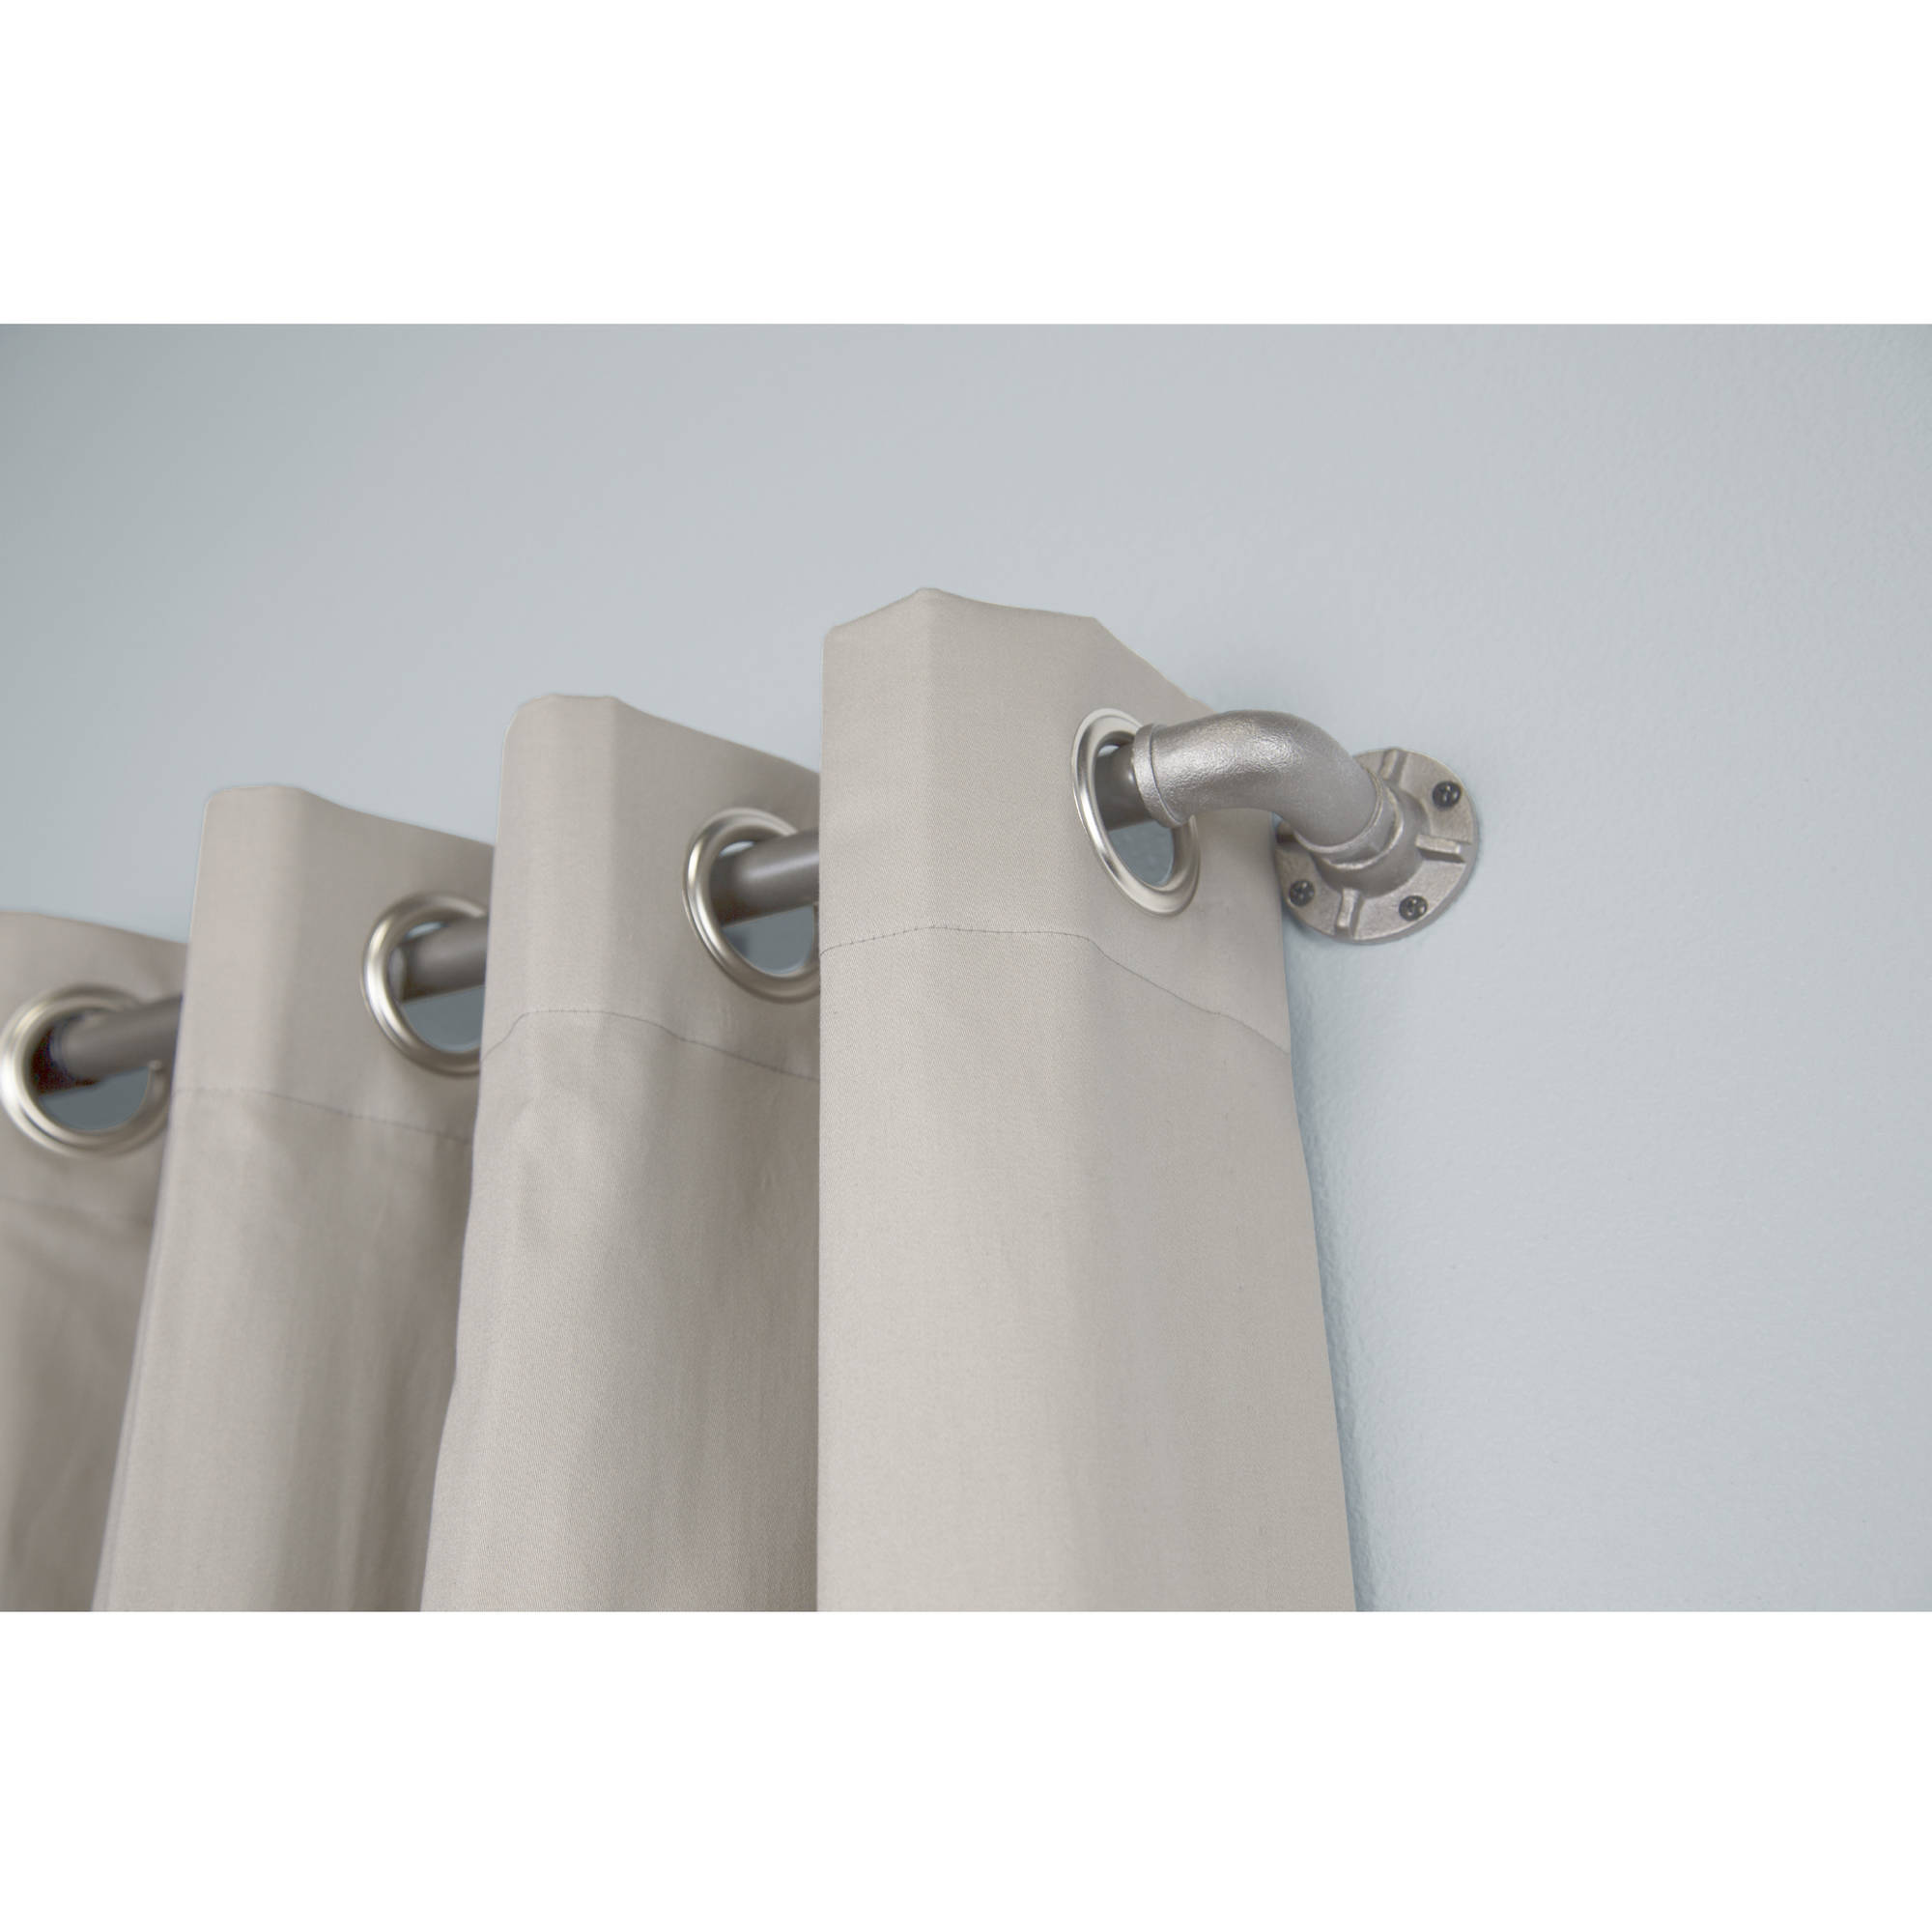 Bali 1 Industrial Curtain Rod Set 36 66 Or 120 Available In Multiple Colors